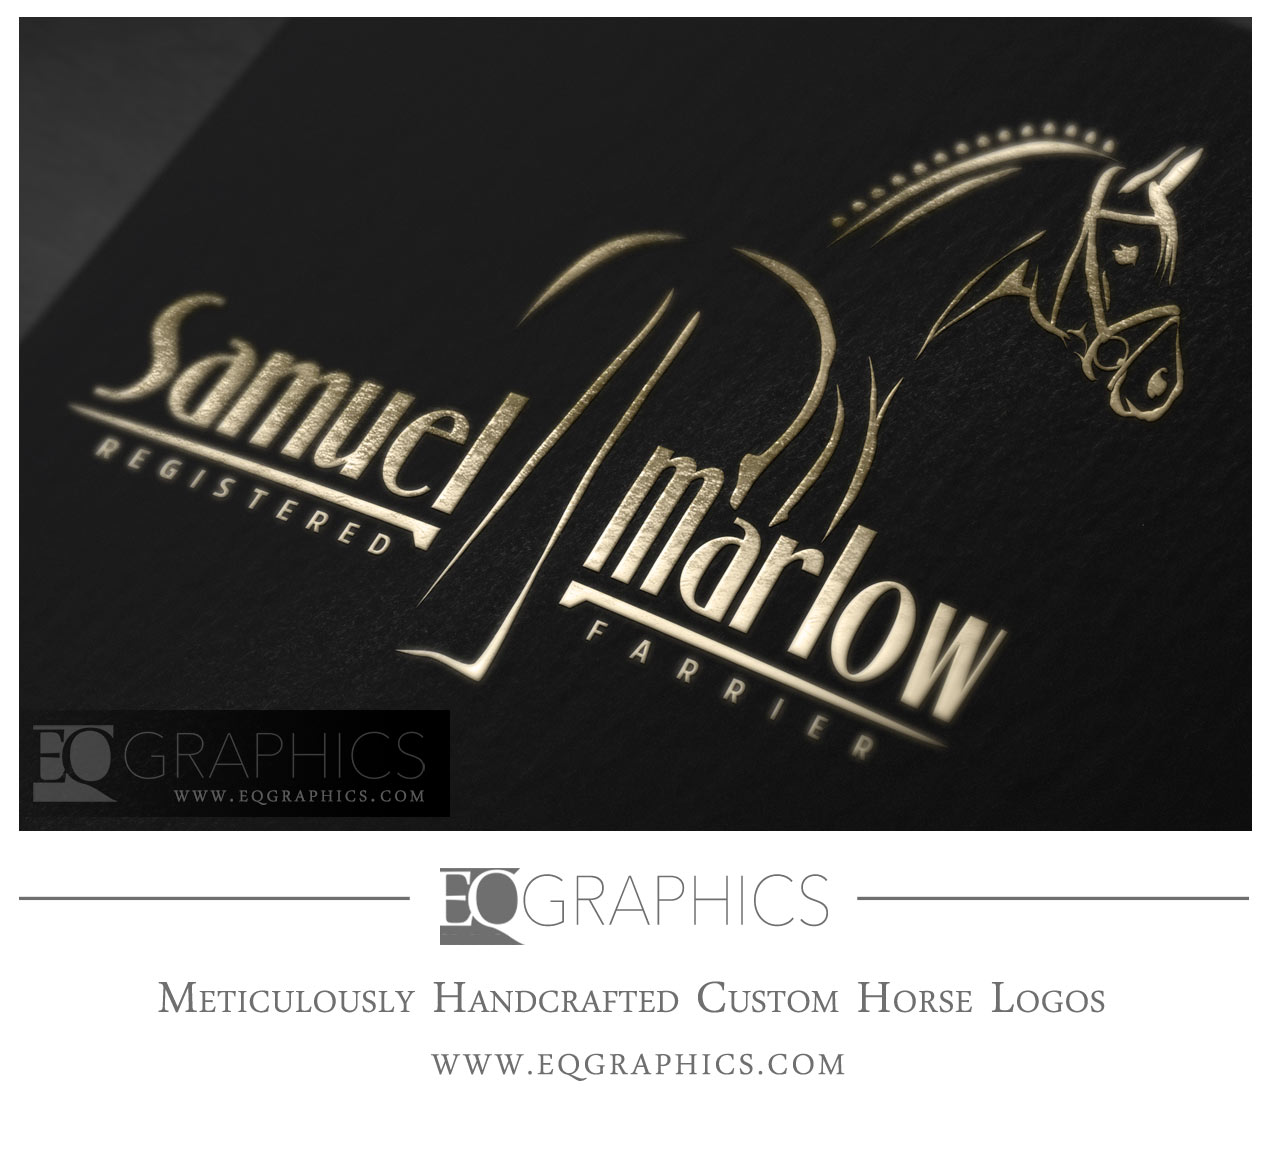 Samuel Marlow Horseshoing Farrier Logo Design by EQ Graphics Equine Logos for Farriers